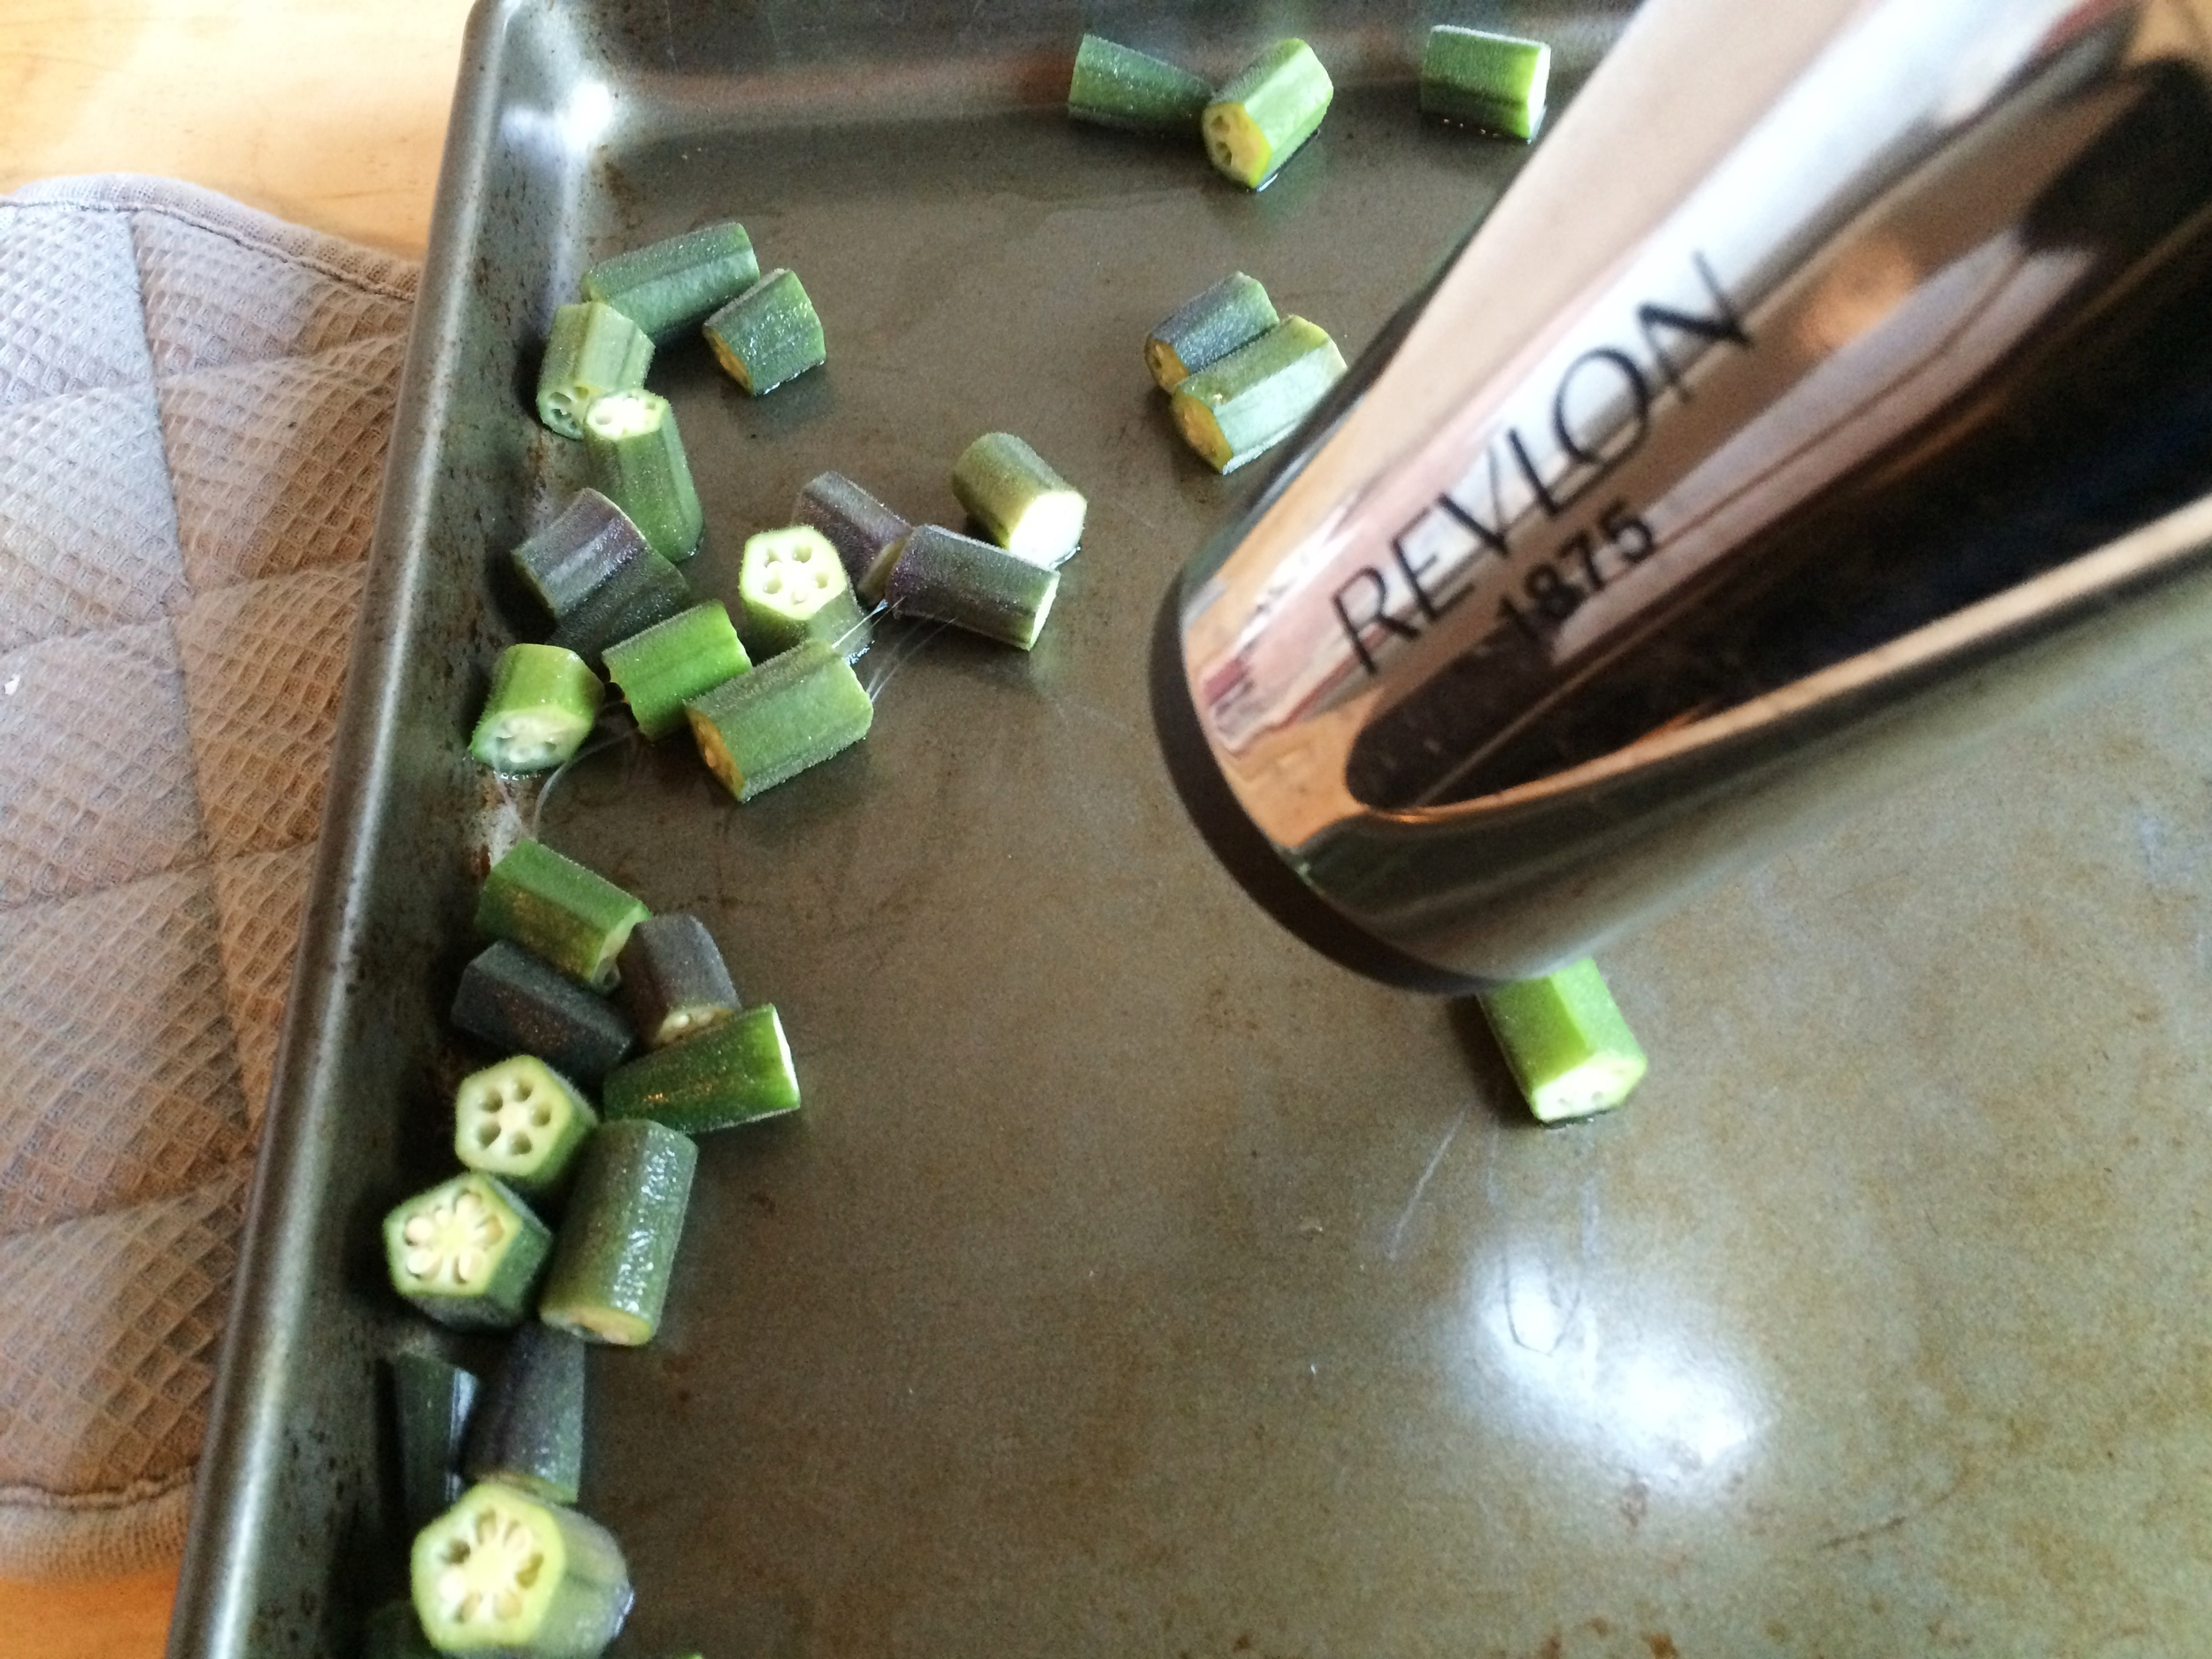 Move the chilled okra to a baking sheet and dry it thoroughly with a hair dryer for 10 minutes. Use a baking sheet with tall walls. Okra is very light and will blow away. You can see that the okra is still sticky.